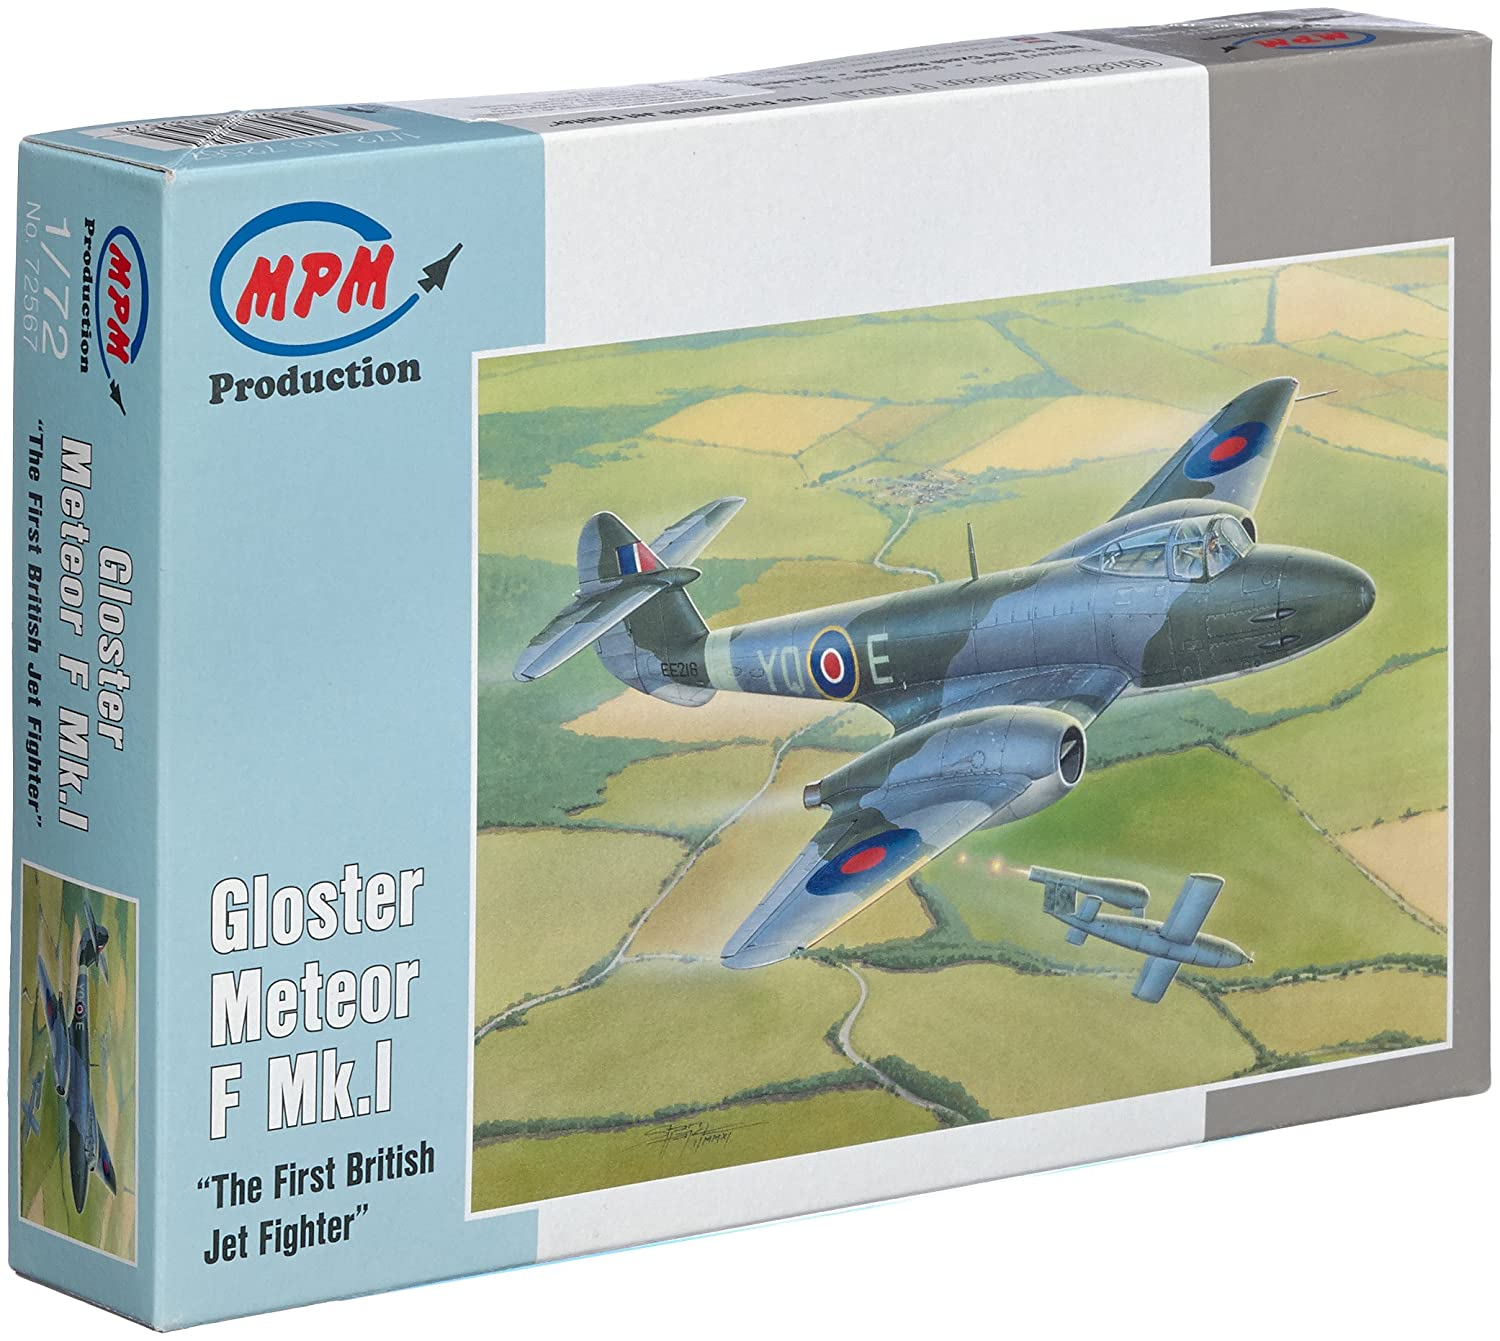 Gloster Meteor F Mk.I (1:72)